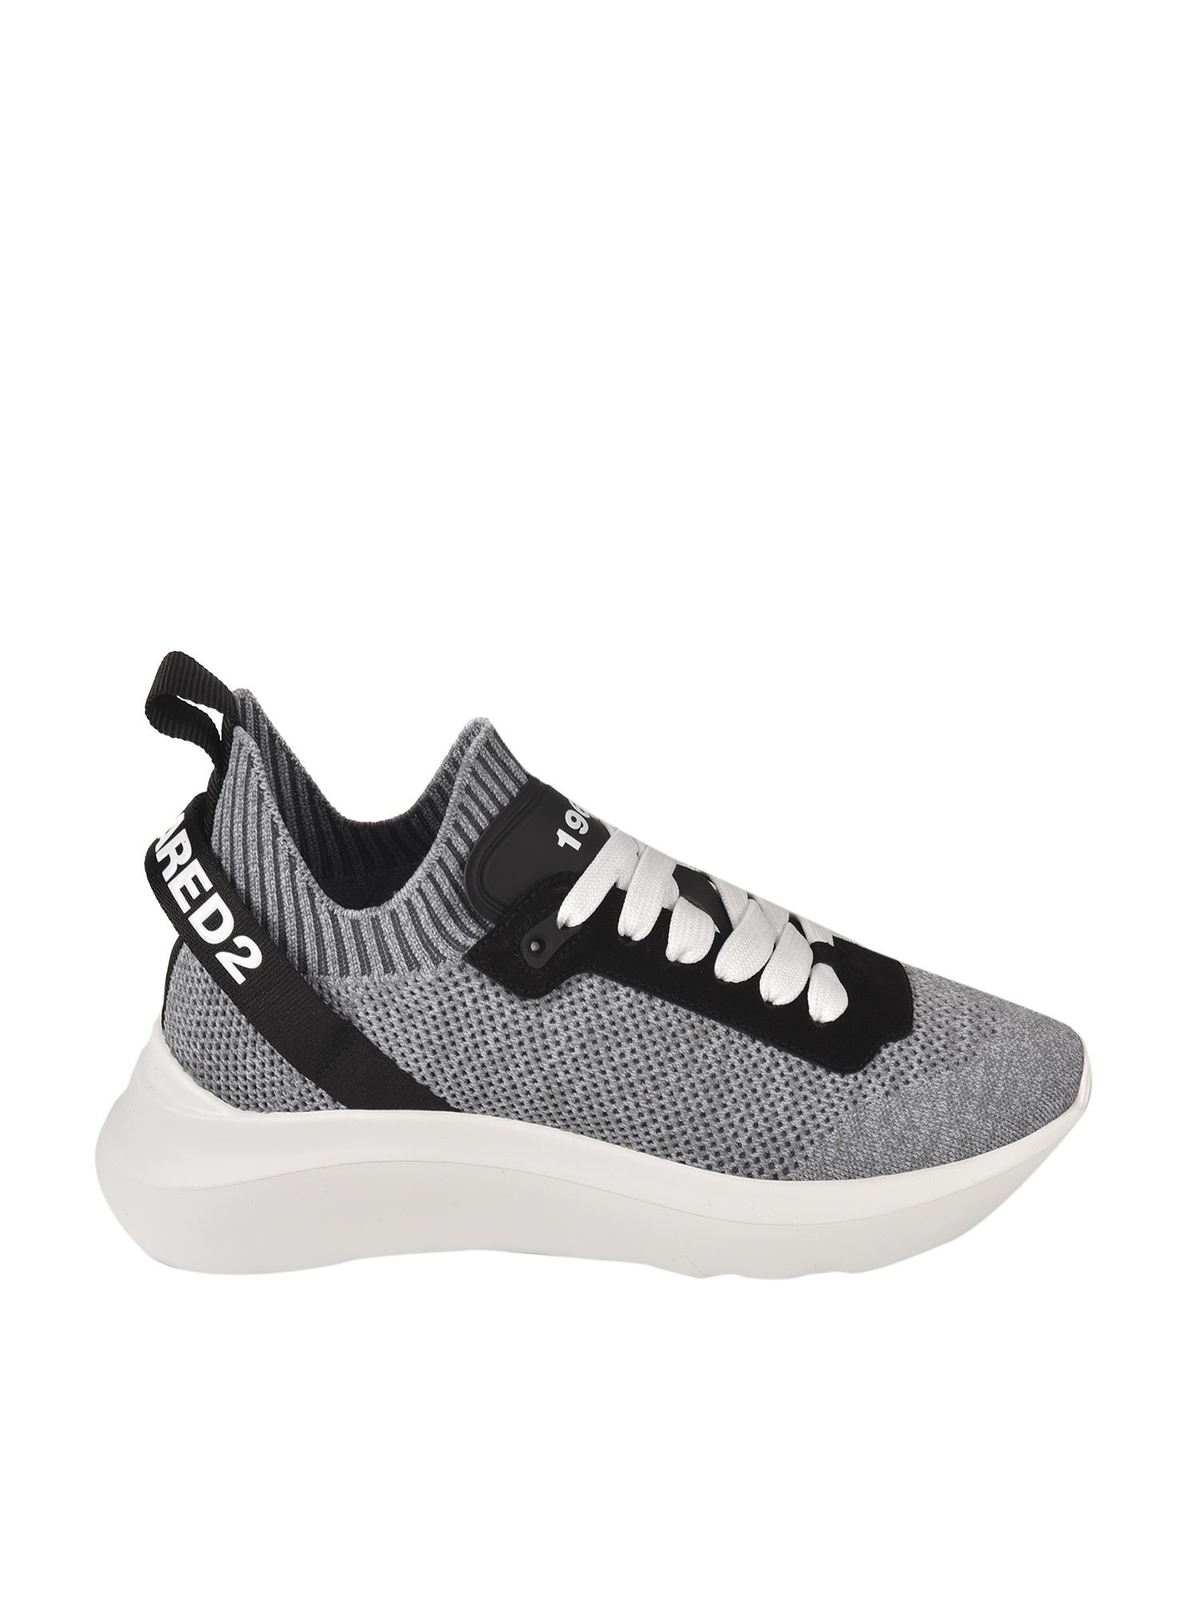 Dsquared2 Sports SPEEDSTER SNEAKERS IN GRAY